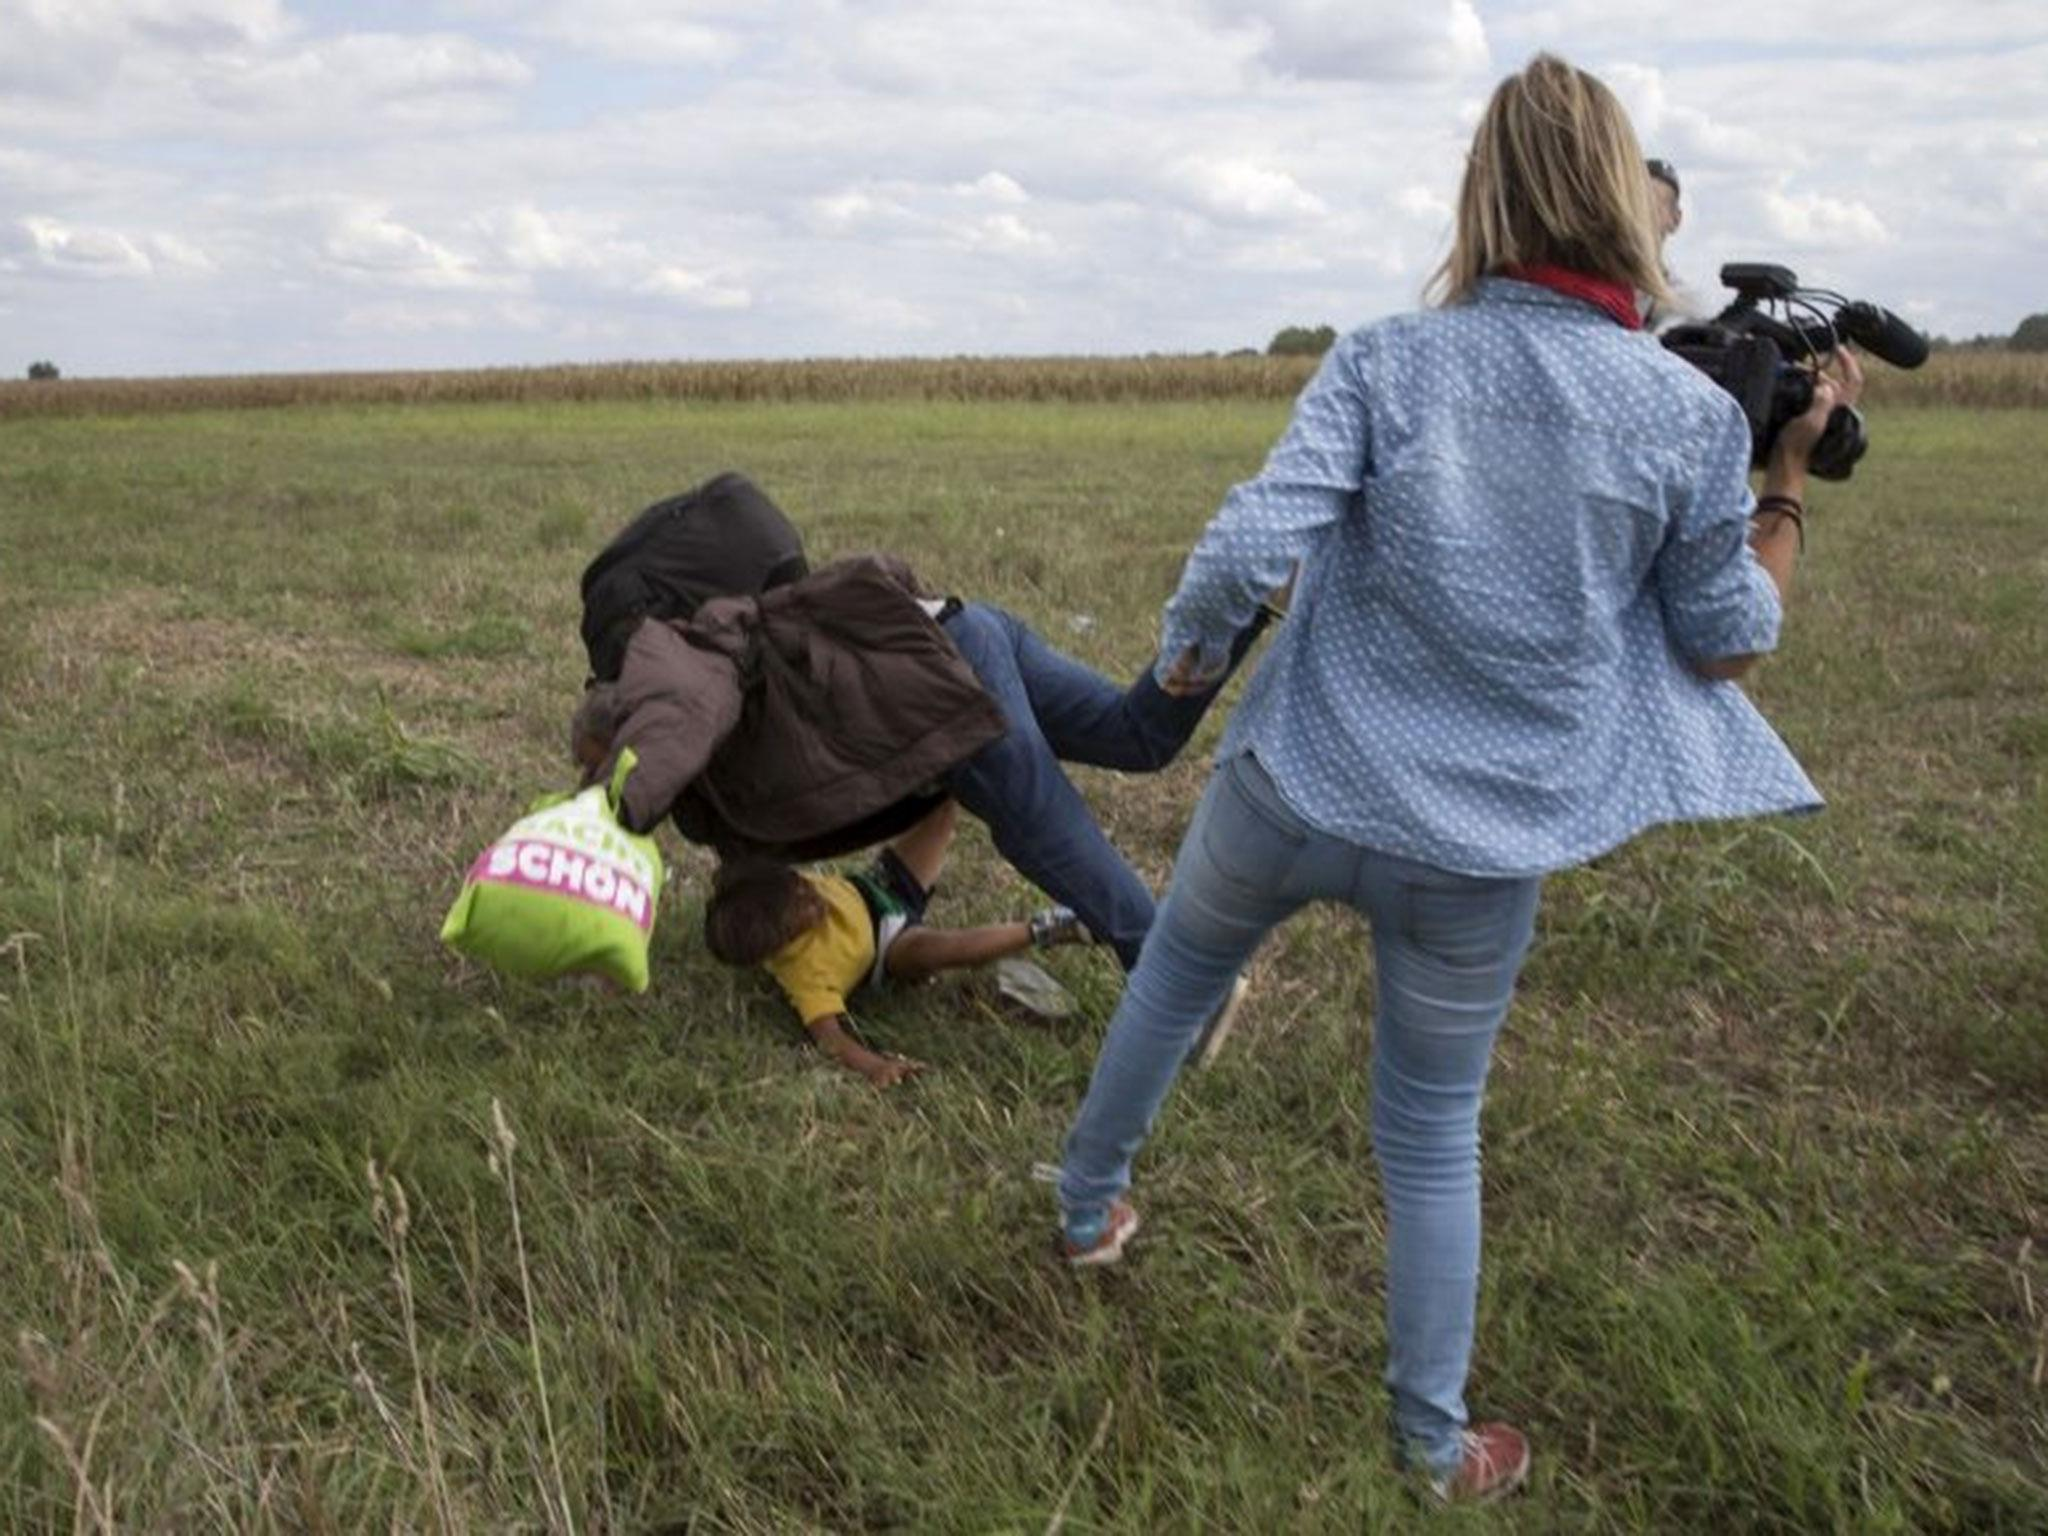 Hungarian filmed tripping up fleeing refugees is convicted